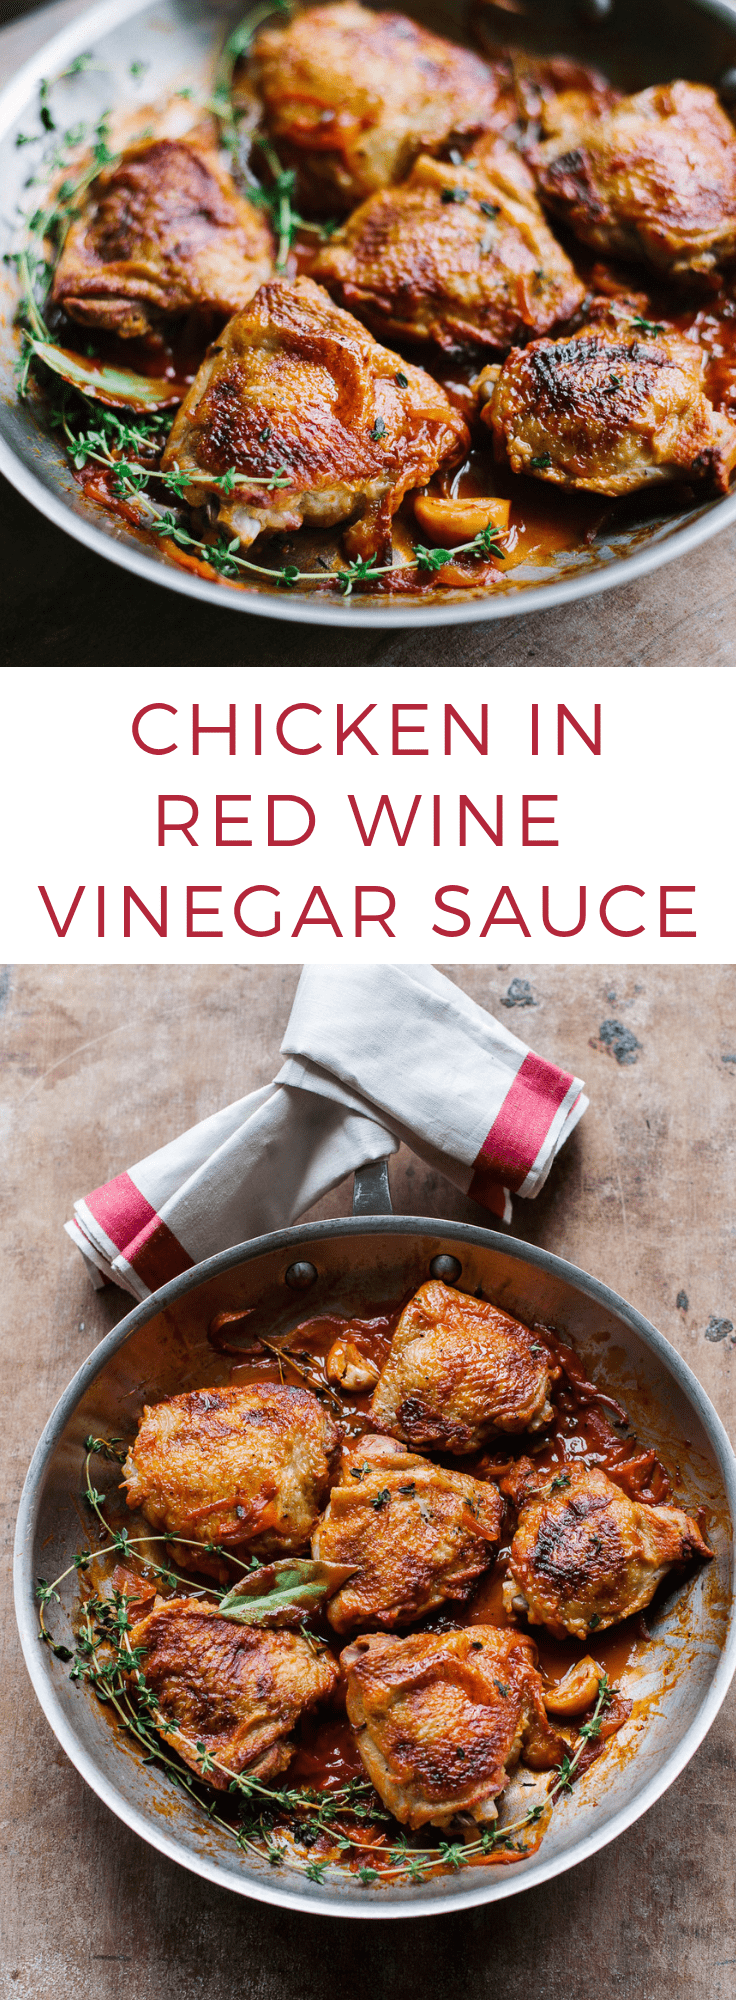 Chicken in Red Wine Vinegar Sauce: Simple French homestyle recipe for tender braised chicken in red wine vinegar, with shallots and tomato.